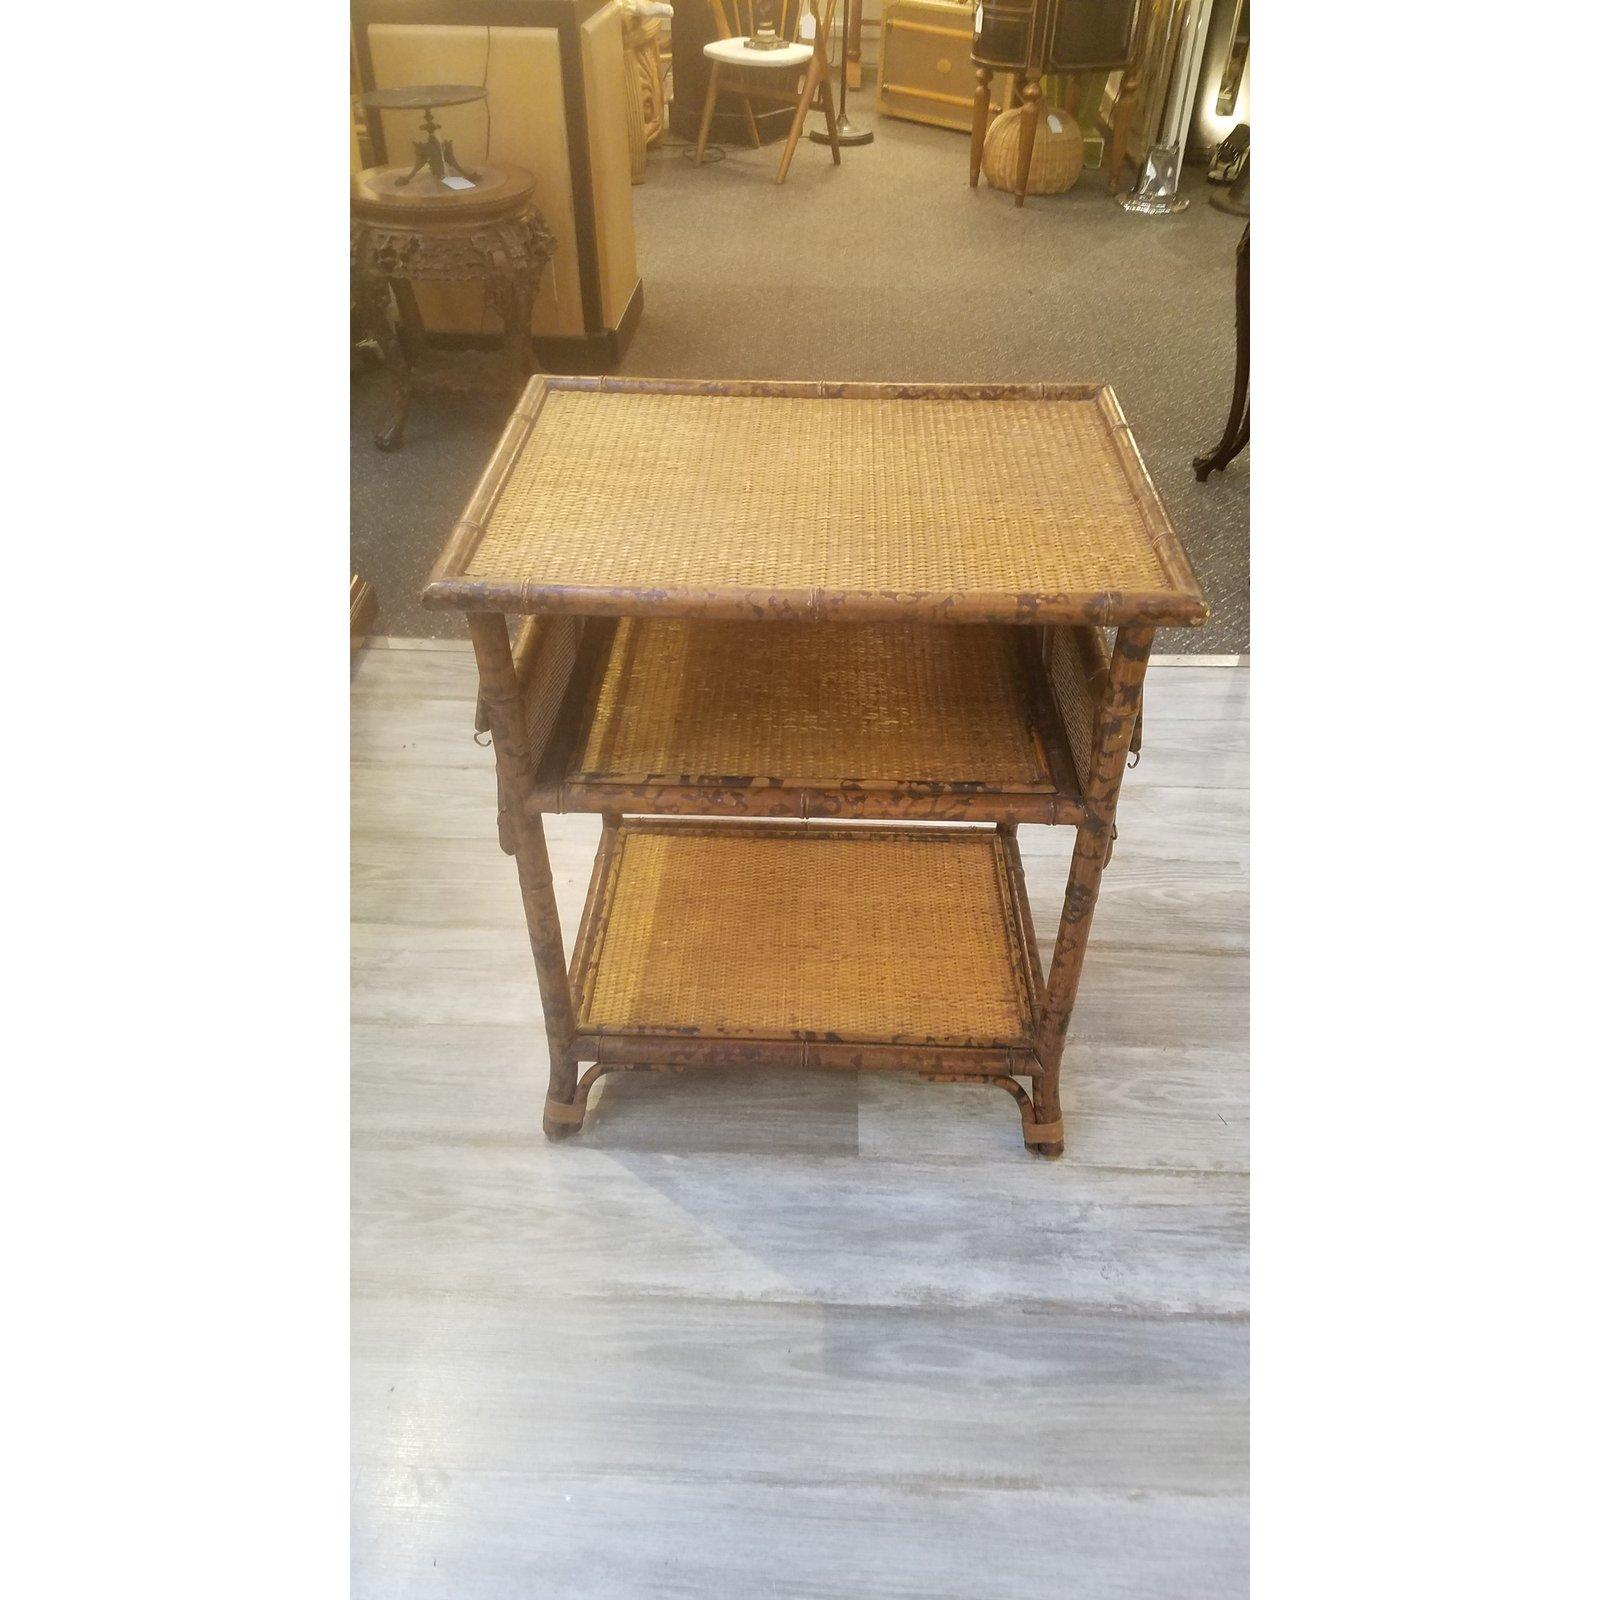 1930s Victorian Tortoise Bamboo End Table With Fold Out Shelves